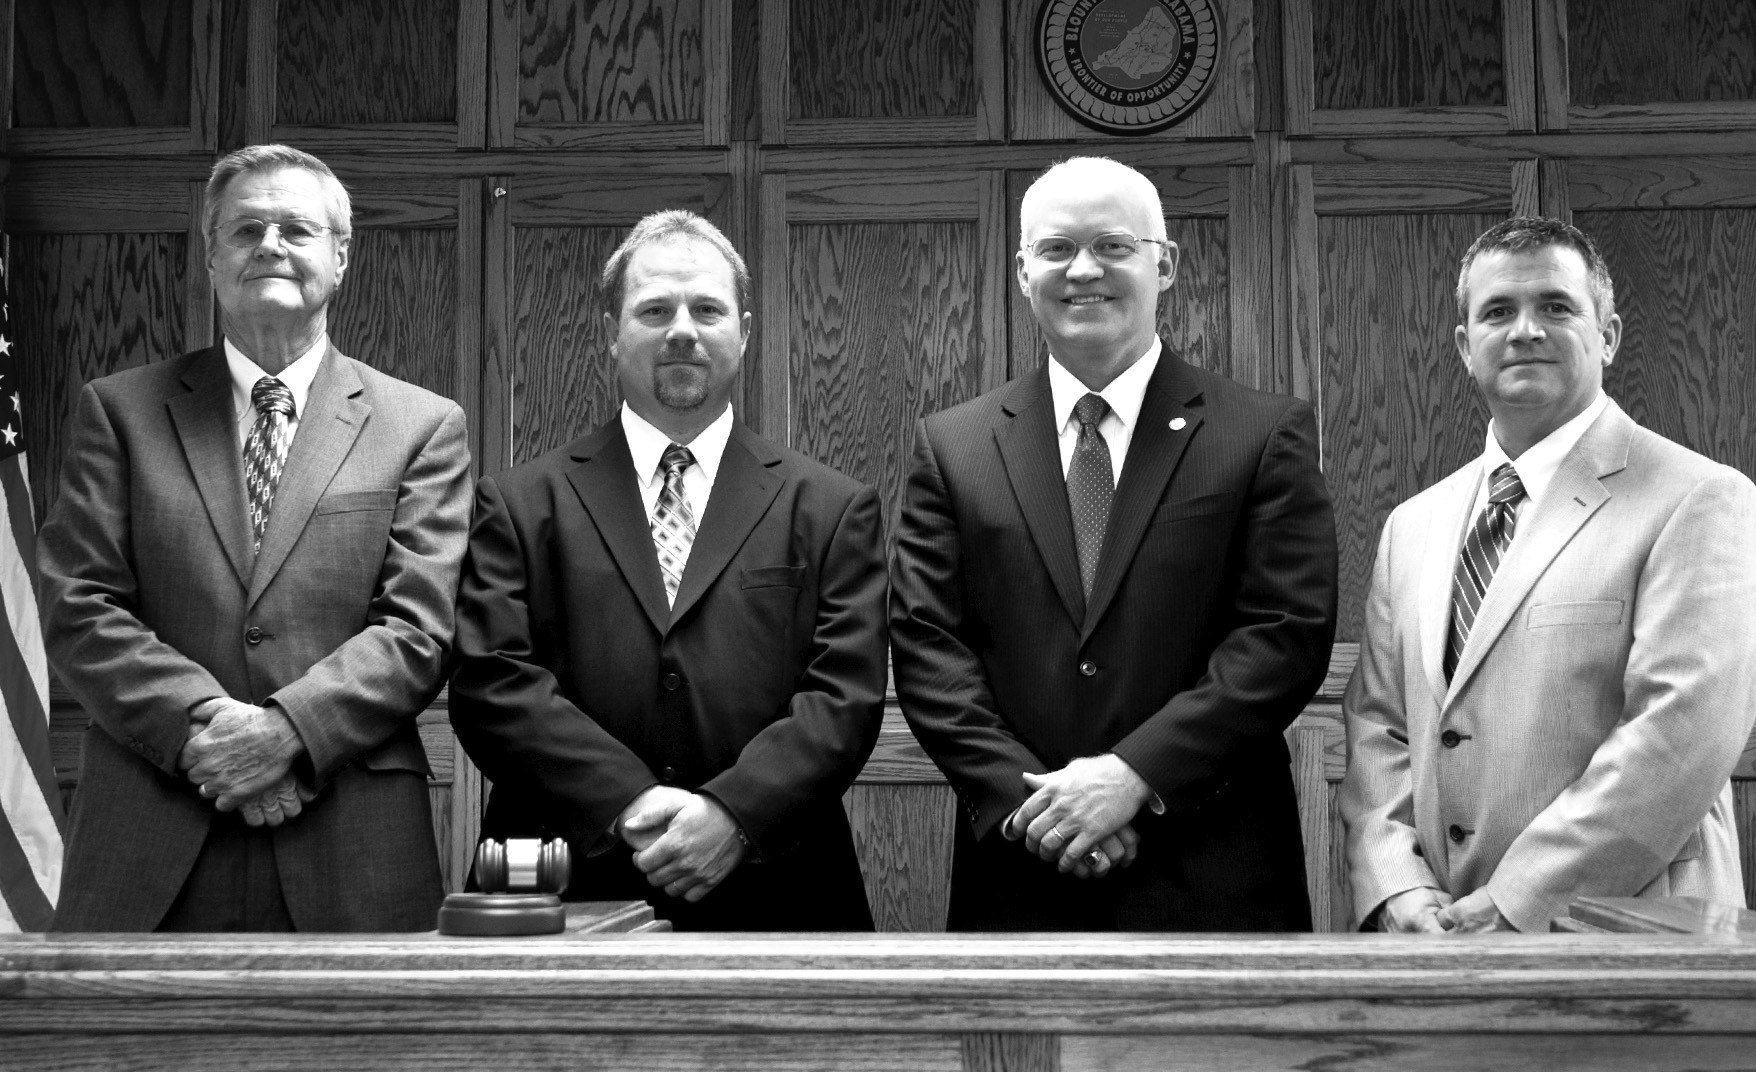 The new Blount County Commission is shown (from left): Waymon Pitts (District 4), Dean Calvert (District 3), Commission Chairman David Standridge, and Allen Armstrong (District 1). Missing is District 2 Commissioner Robert Bullard.